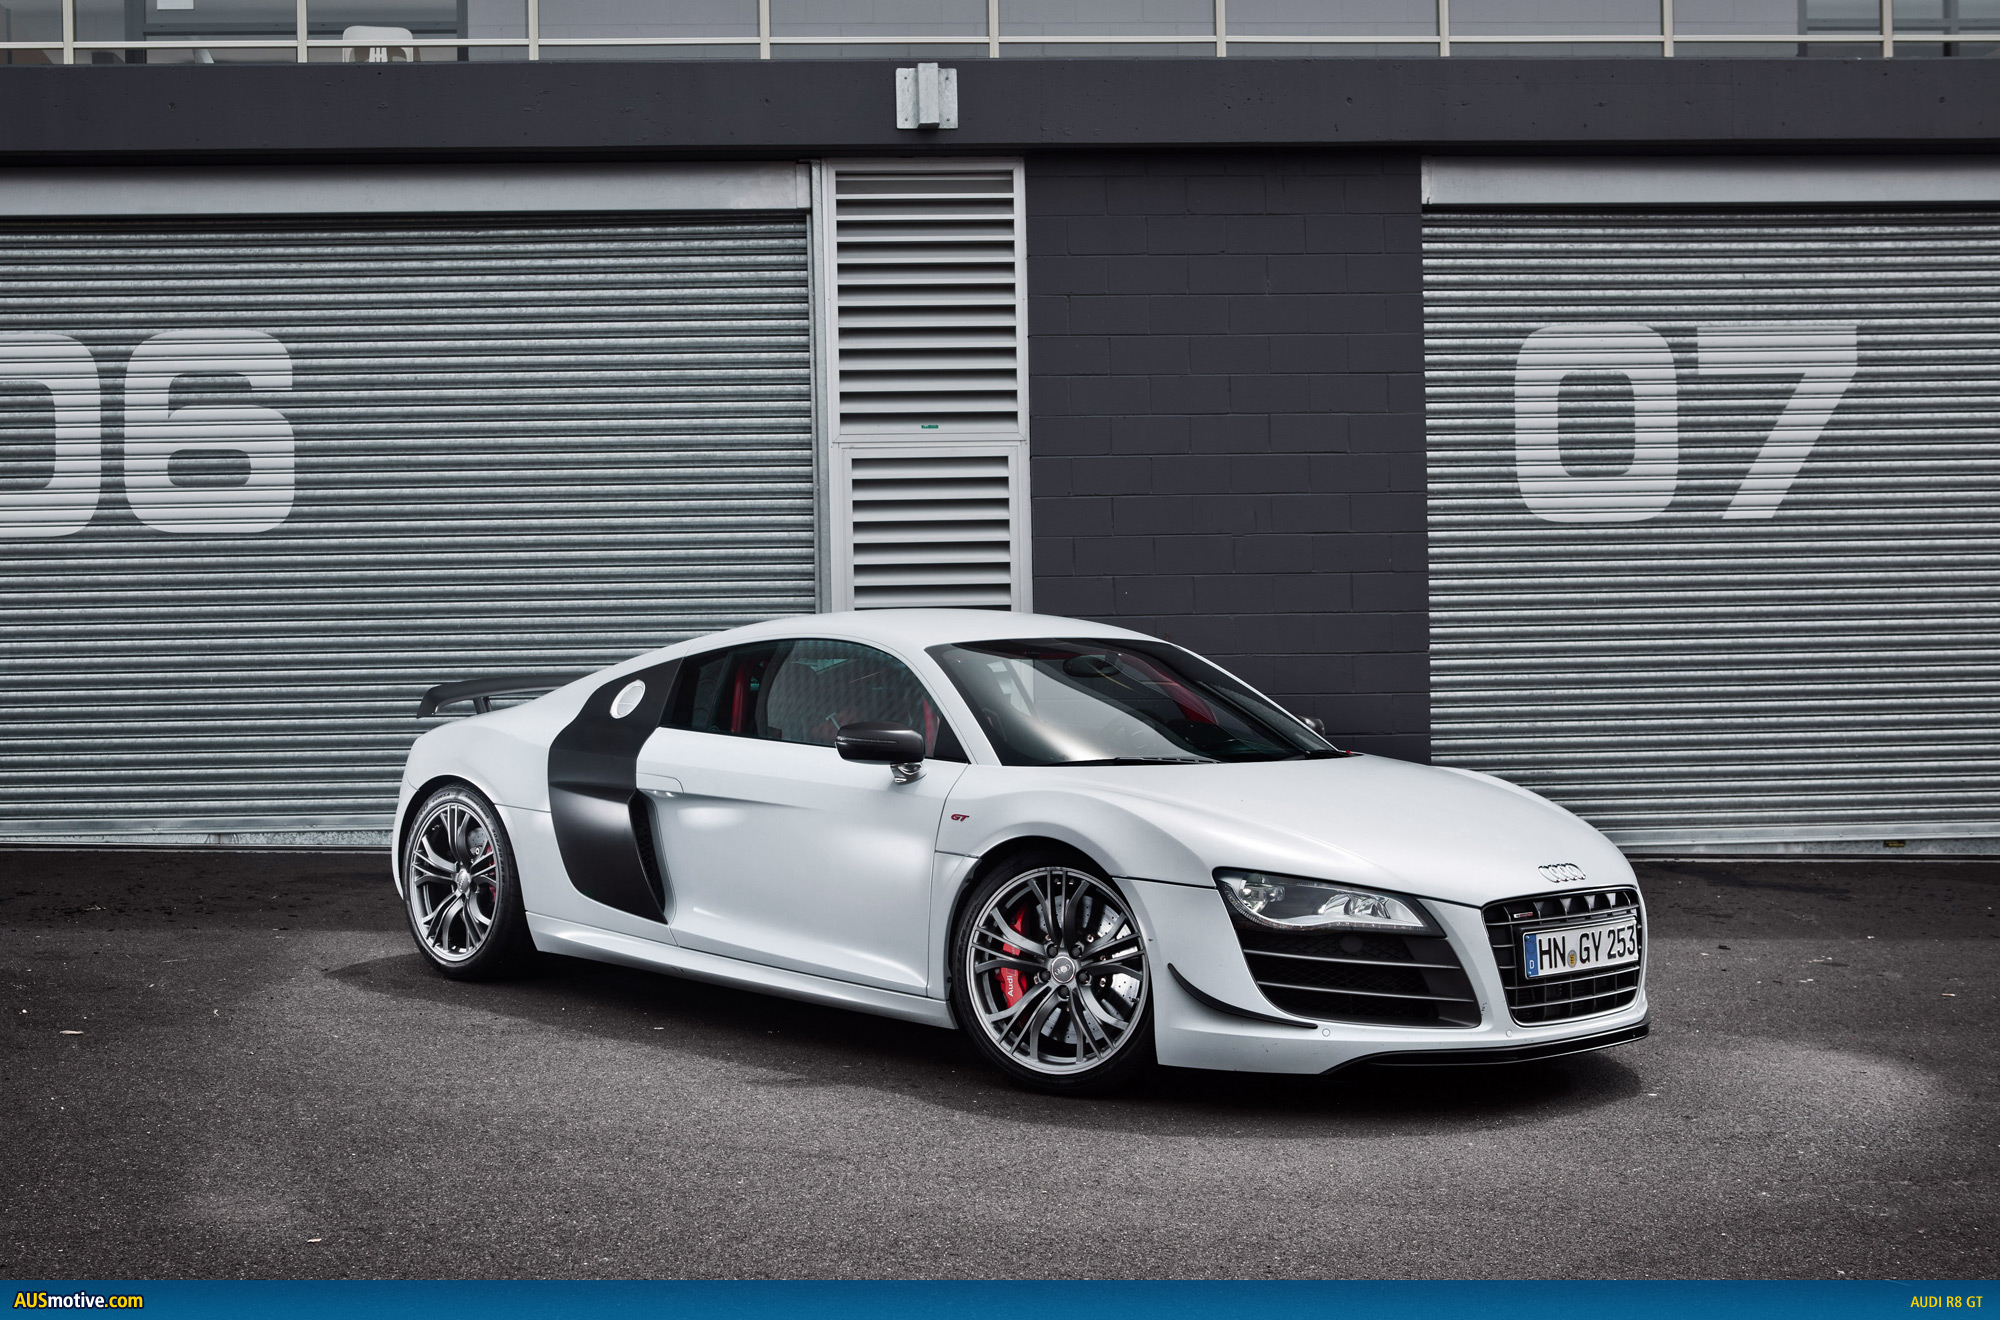 audi r8 gt aims for melbourne. Black Bedroom Furniture Sets. Home Design Ideas